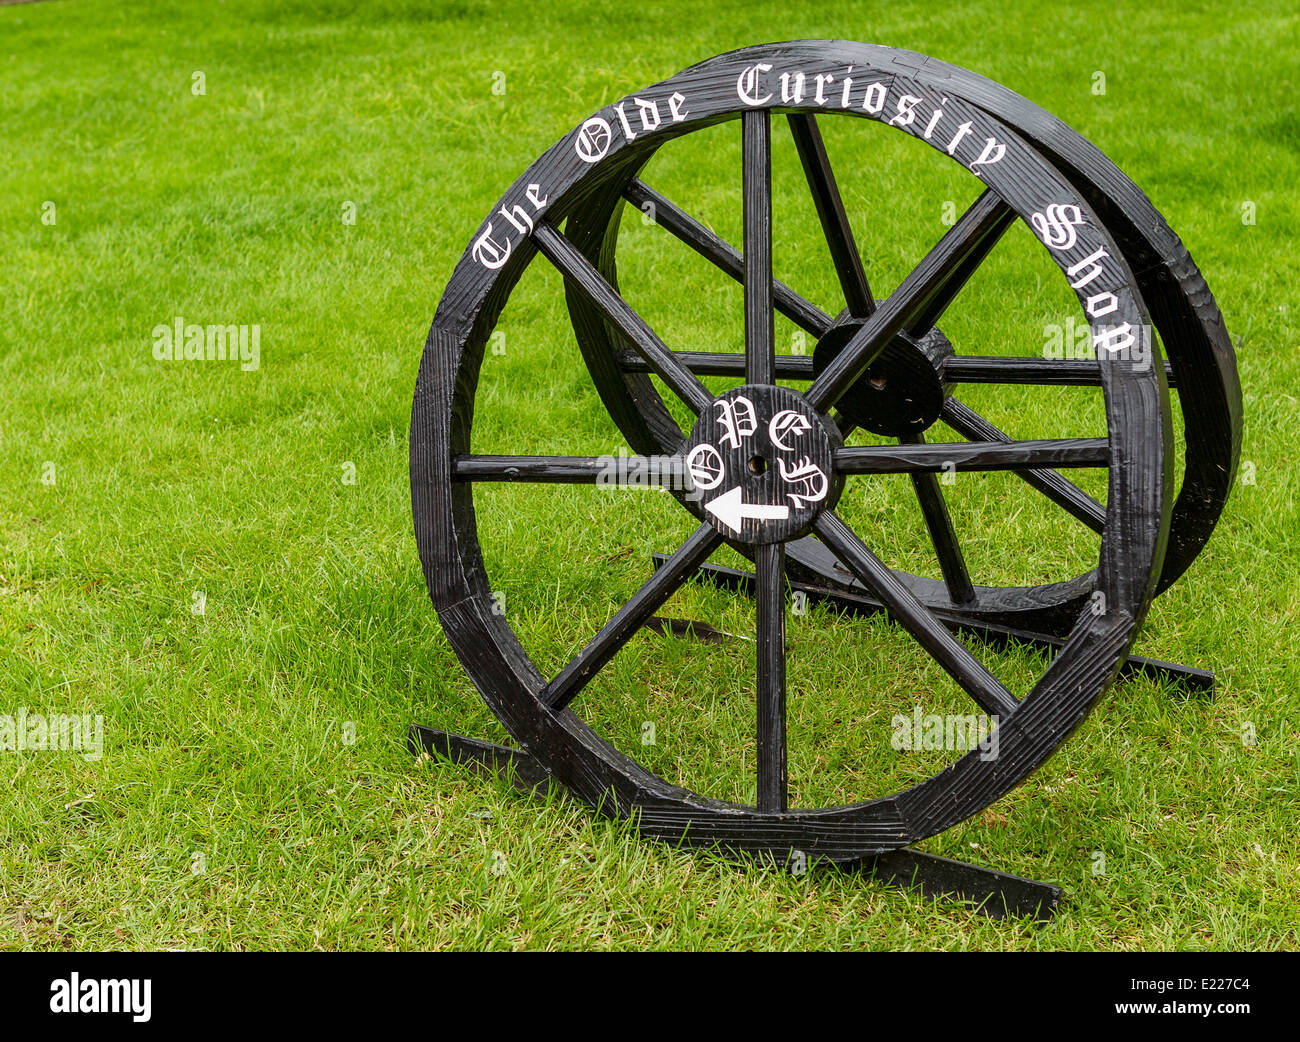 Two old cart wheels have been creatively used to form a shop sign - Stock Image